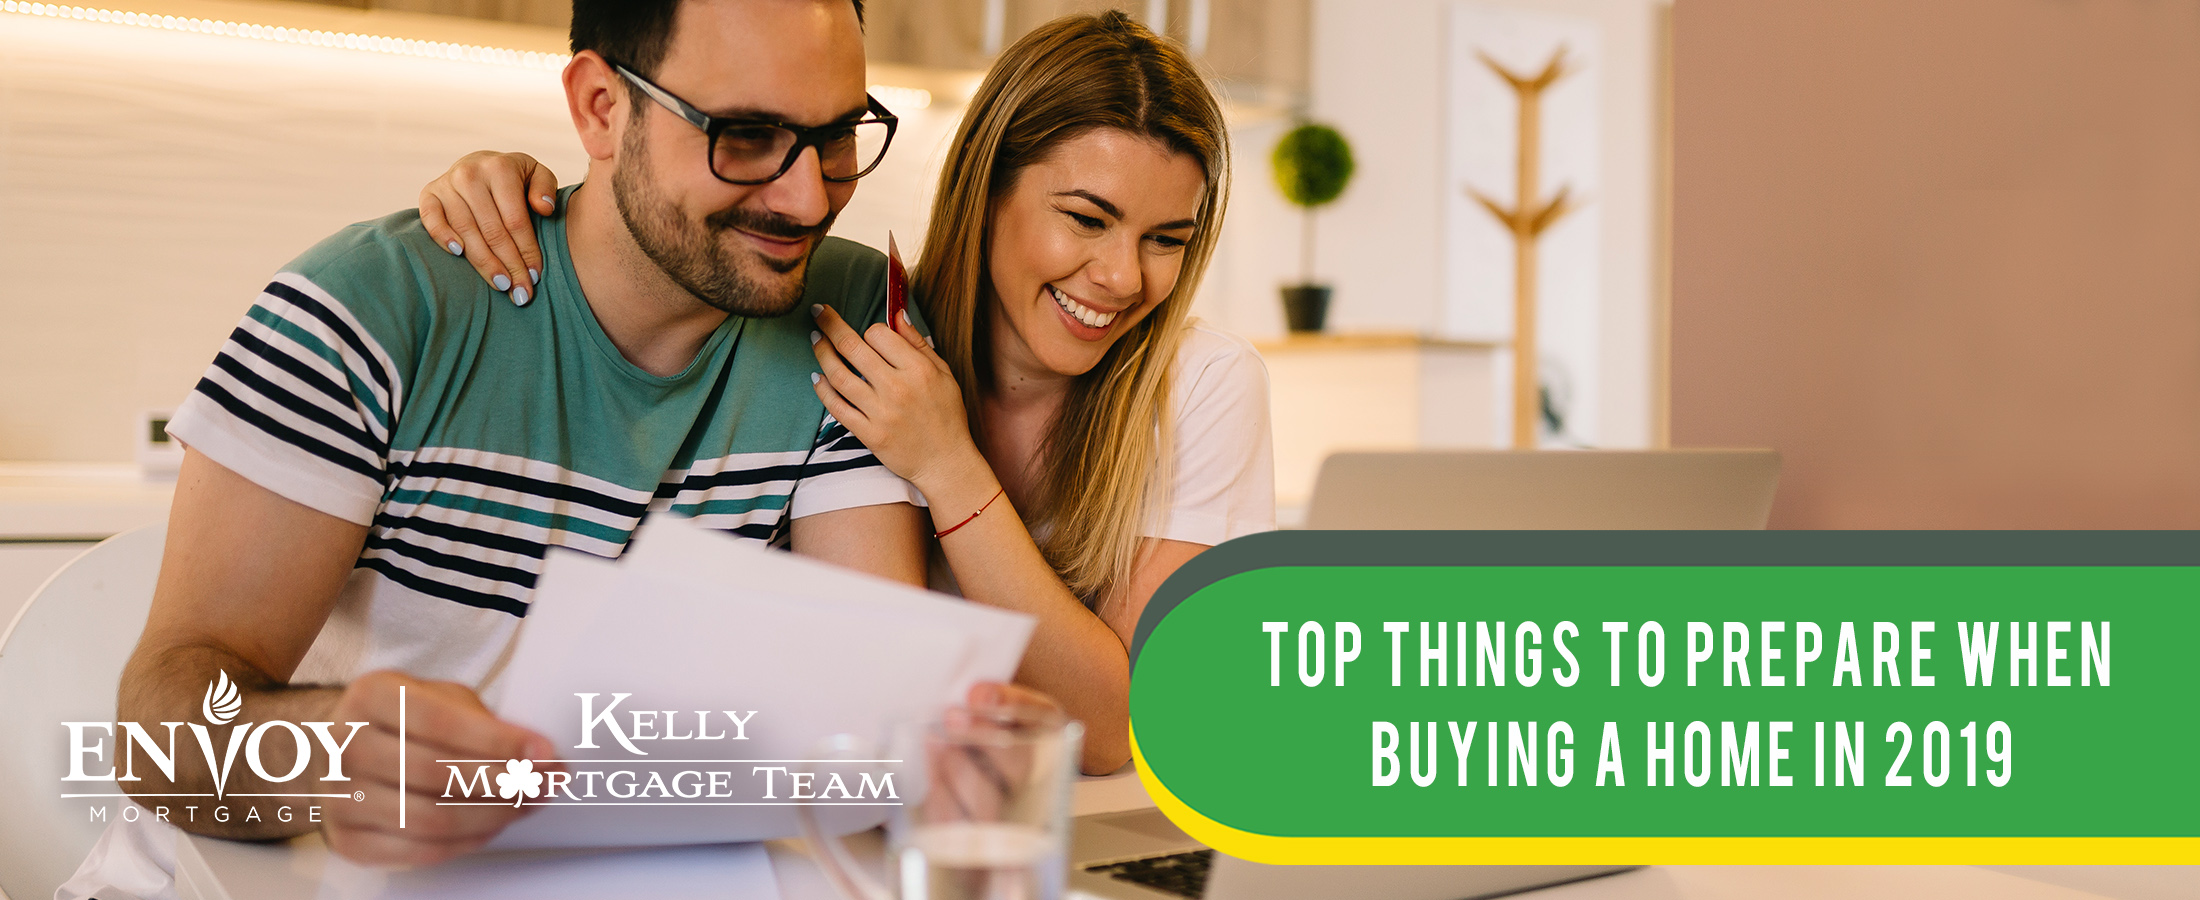 Top Things to Prepare When Buying a Home in 2019